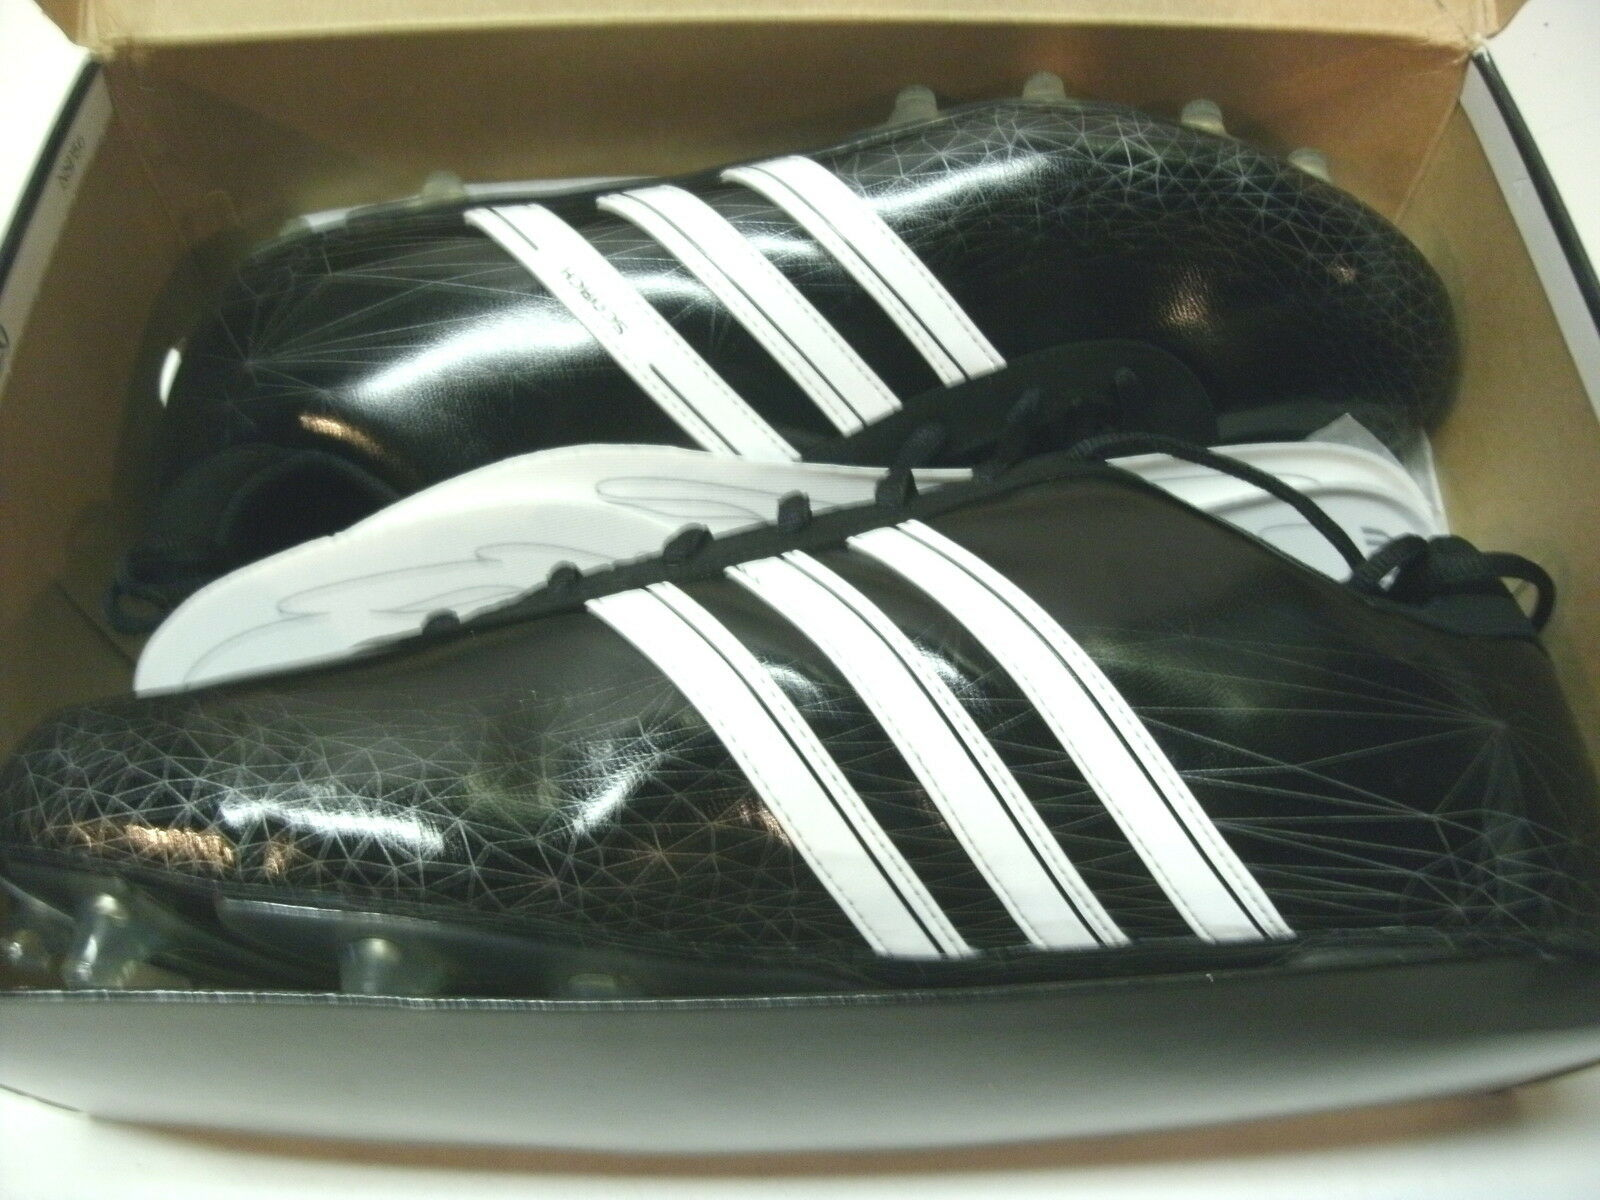 ADIDAS SCORCH 7 FLY LOW MENS FOOTBALL SOCCER LACROSSE CLEATS, SIZE 13-1/2 Casual wild